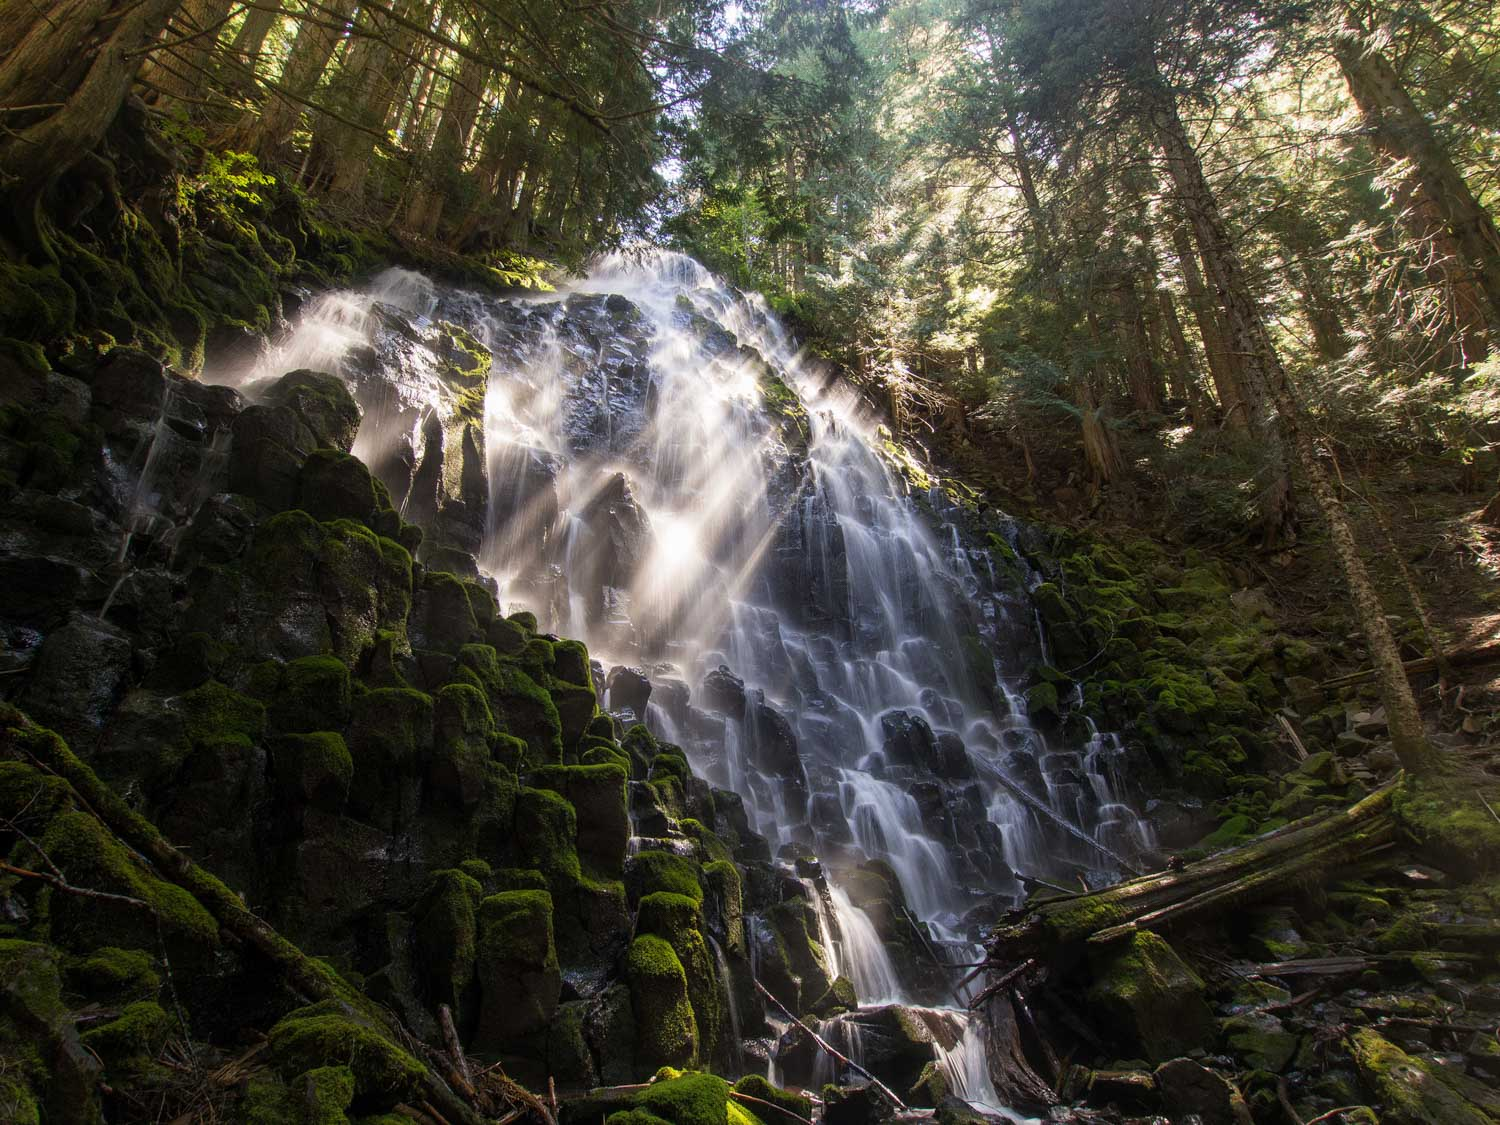 ramona falls cascading down rocks in Oregon's Mt. Hood National Forest